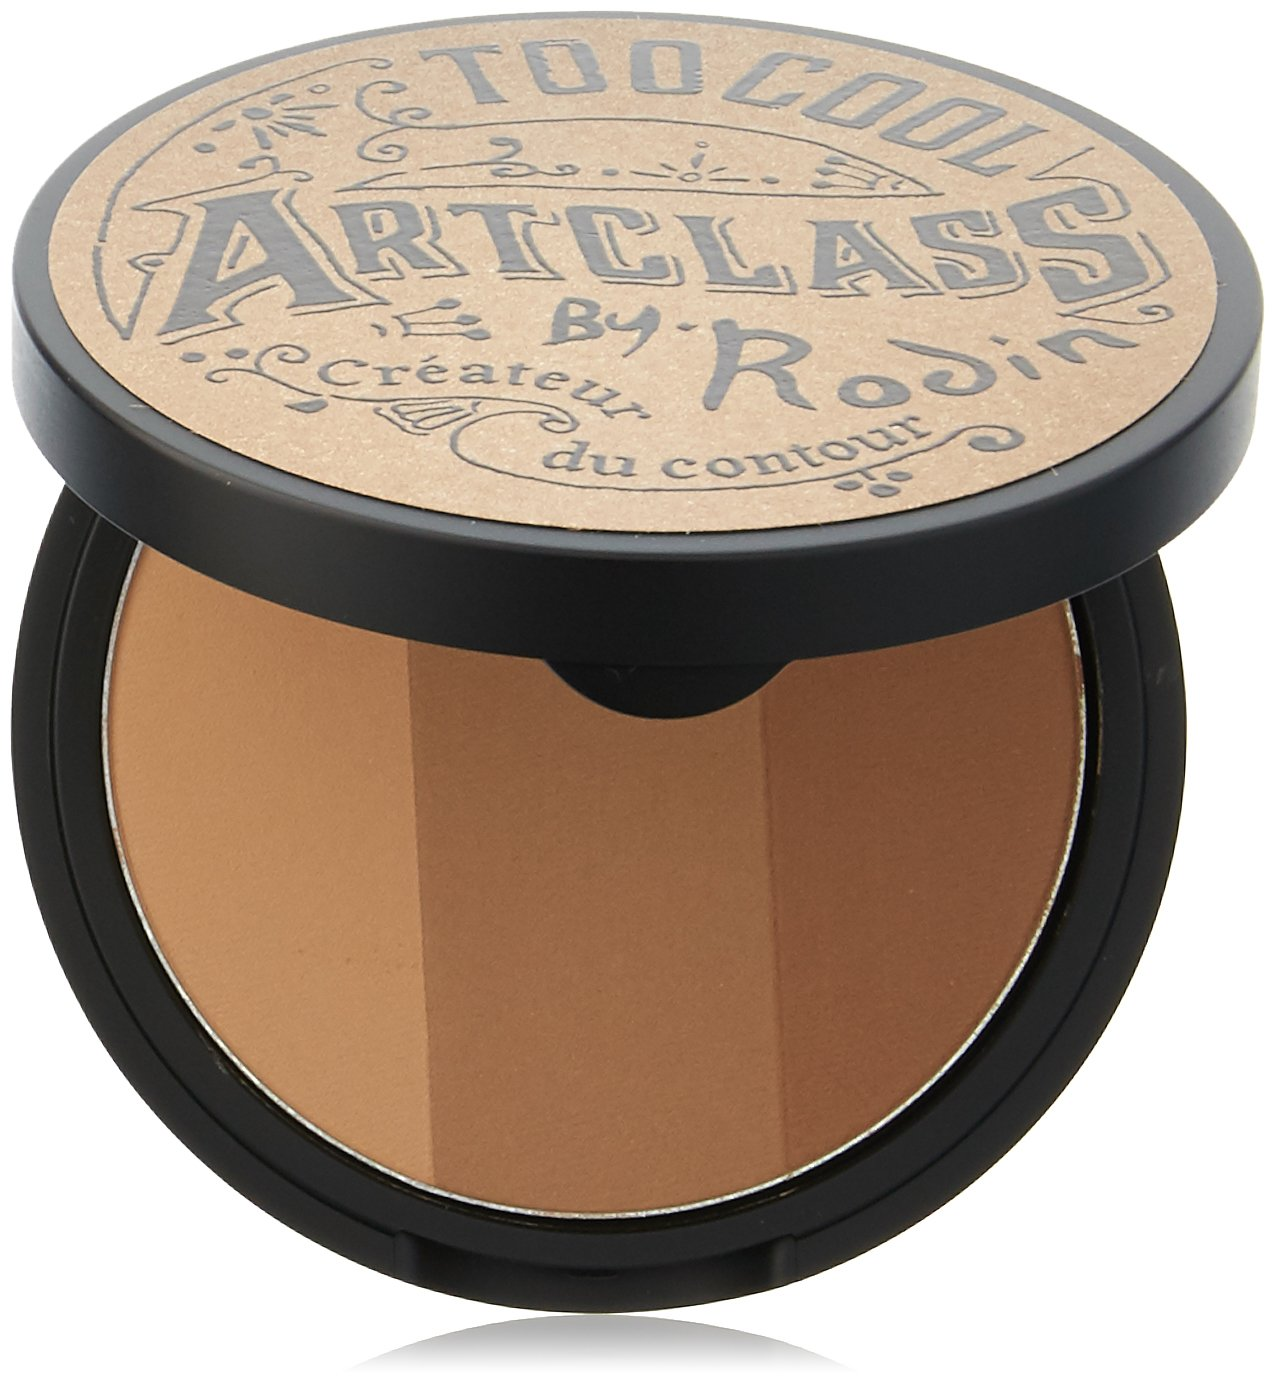 Too Cool For School by Roddin Face Blush, 0.335 Ounce by too cool for school (Image #1)